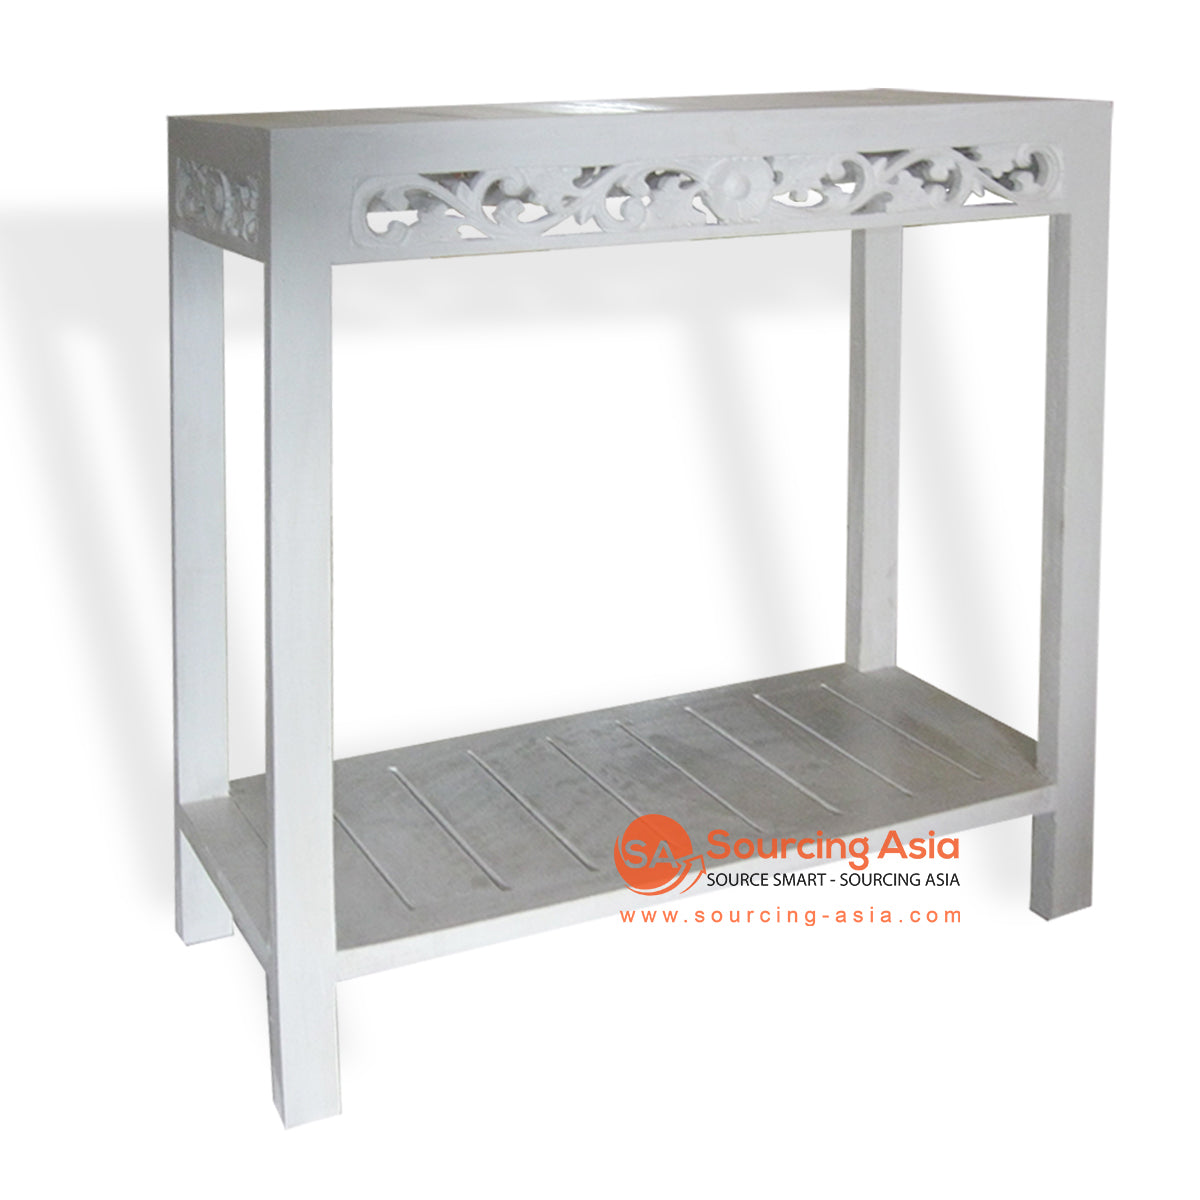 THE014 CONSOLE WITH CARVING WHITE WASH